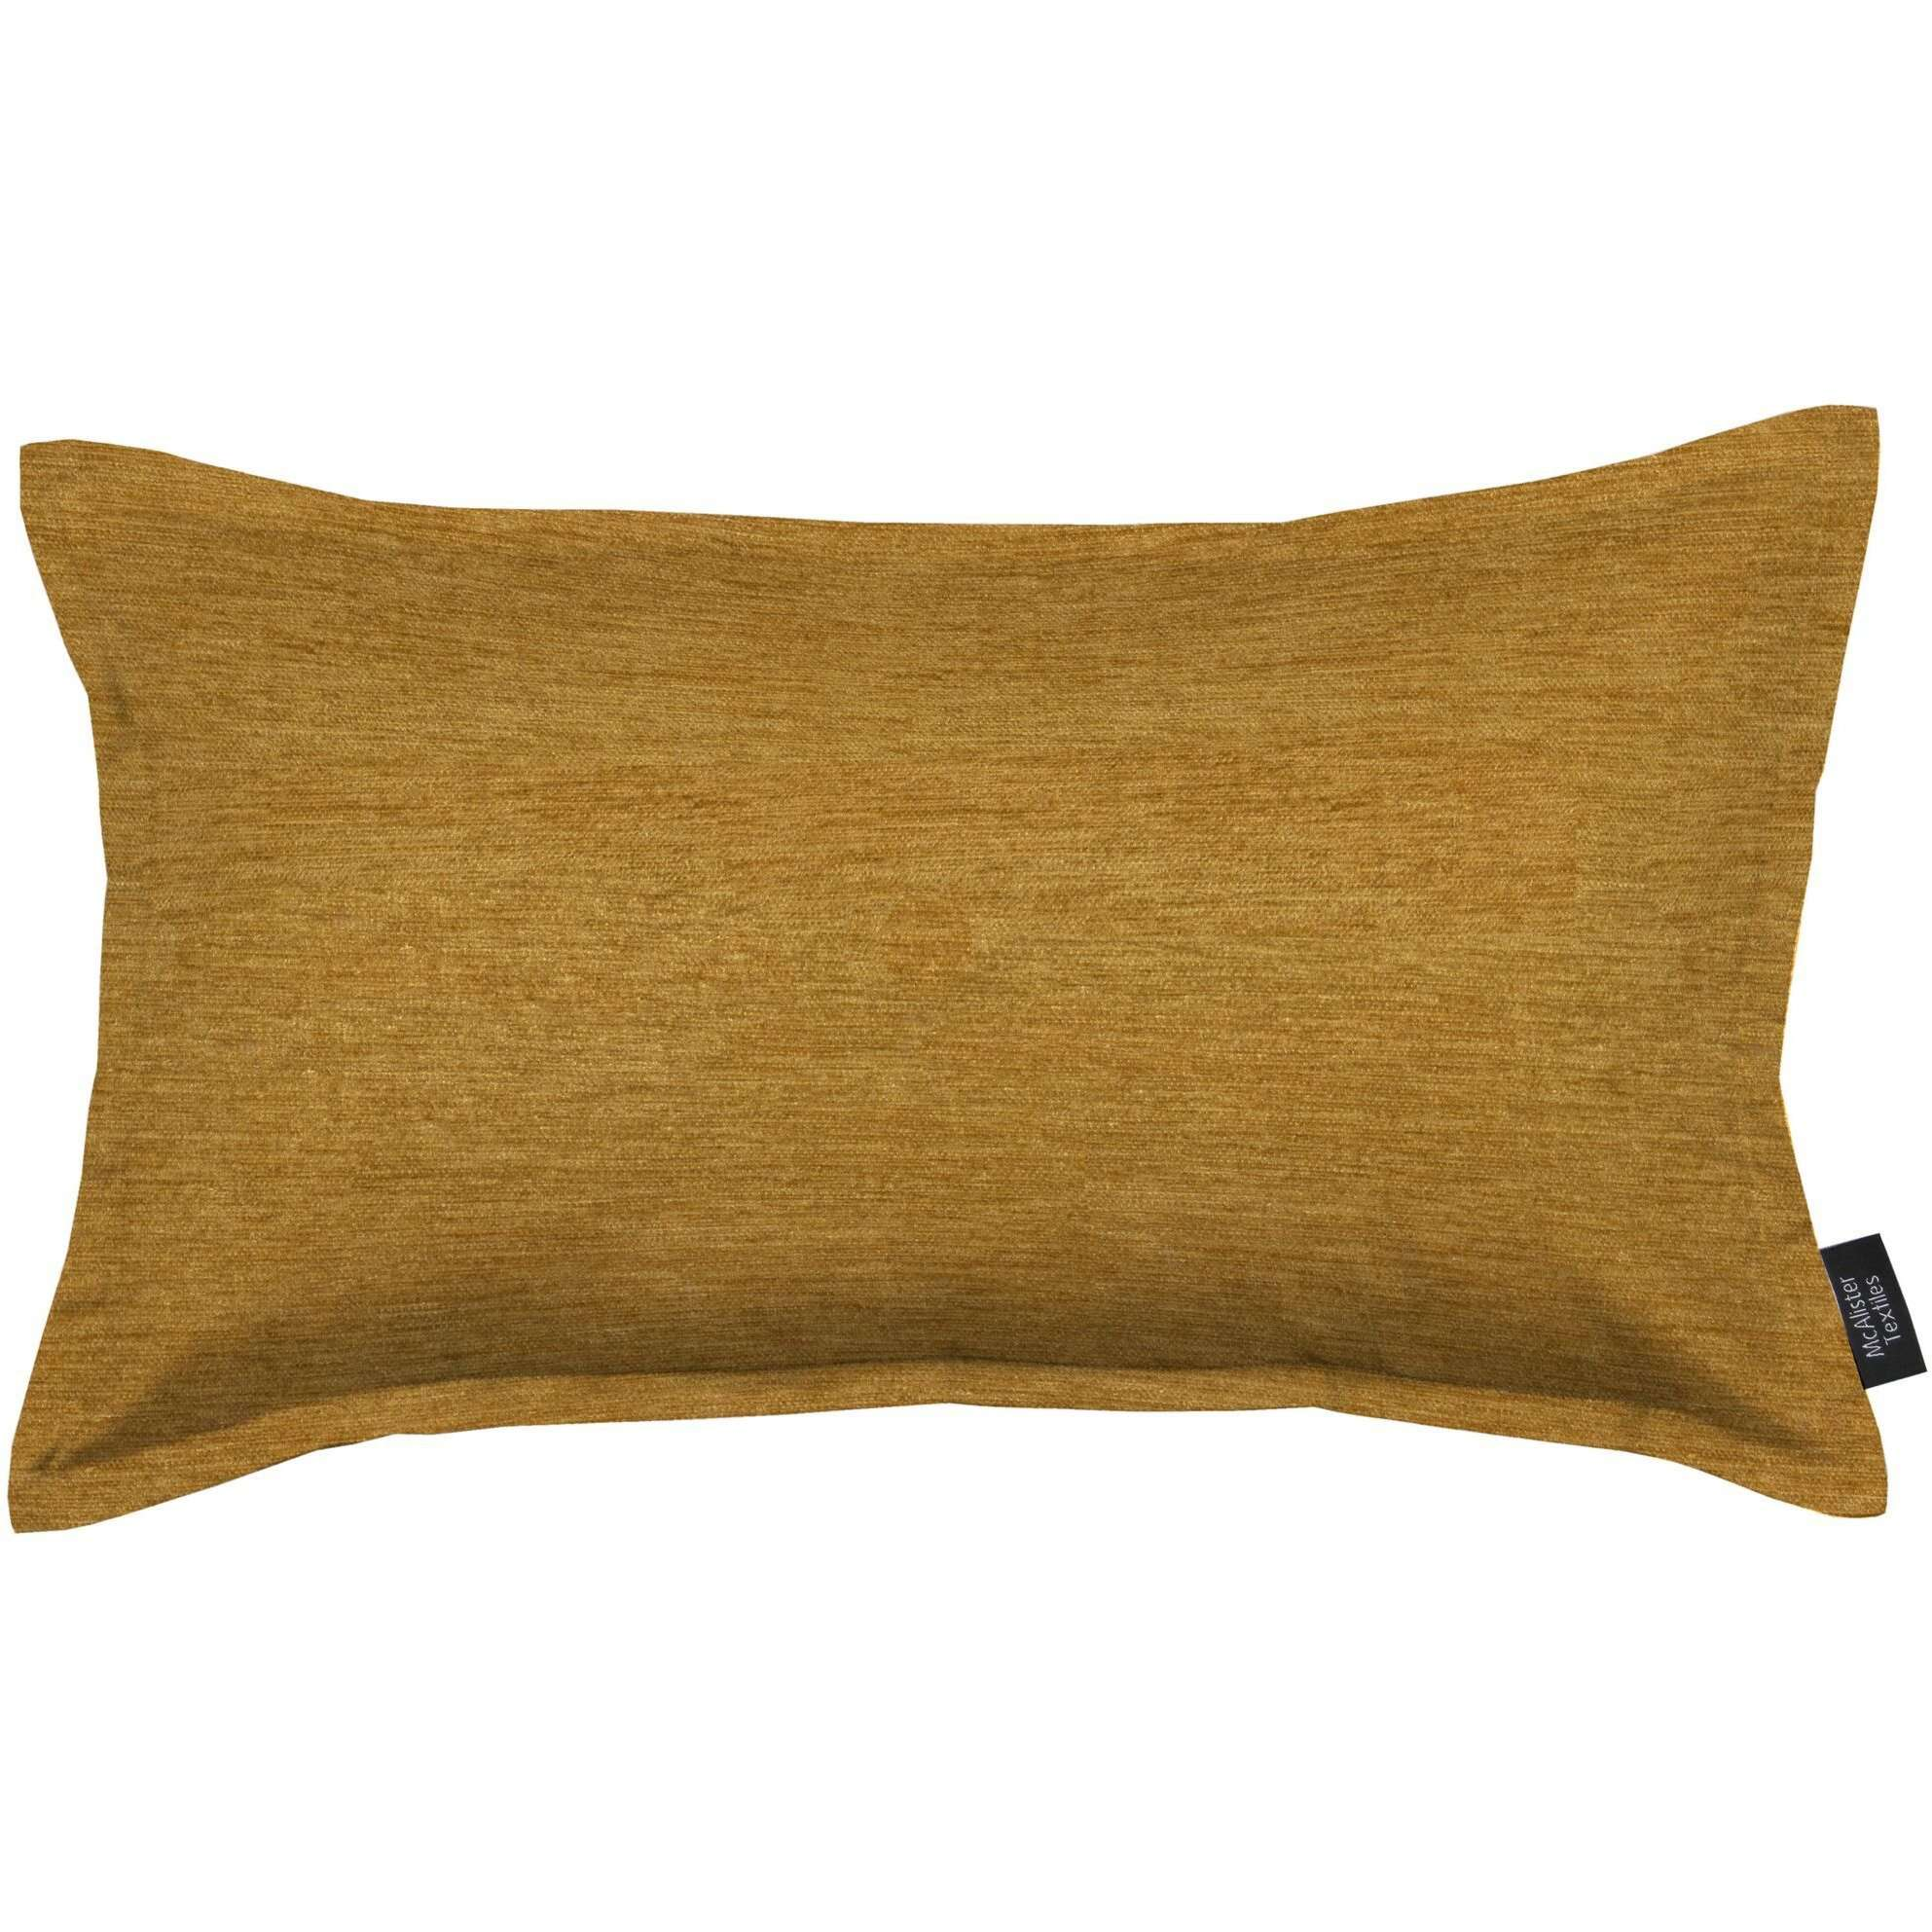 McAlister Textiles Plain Chenille Mustard Yellow Pillow Pillow Cover Only 50cm x 30cm